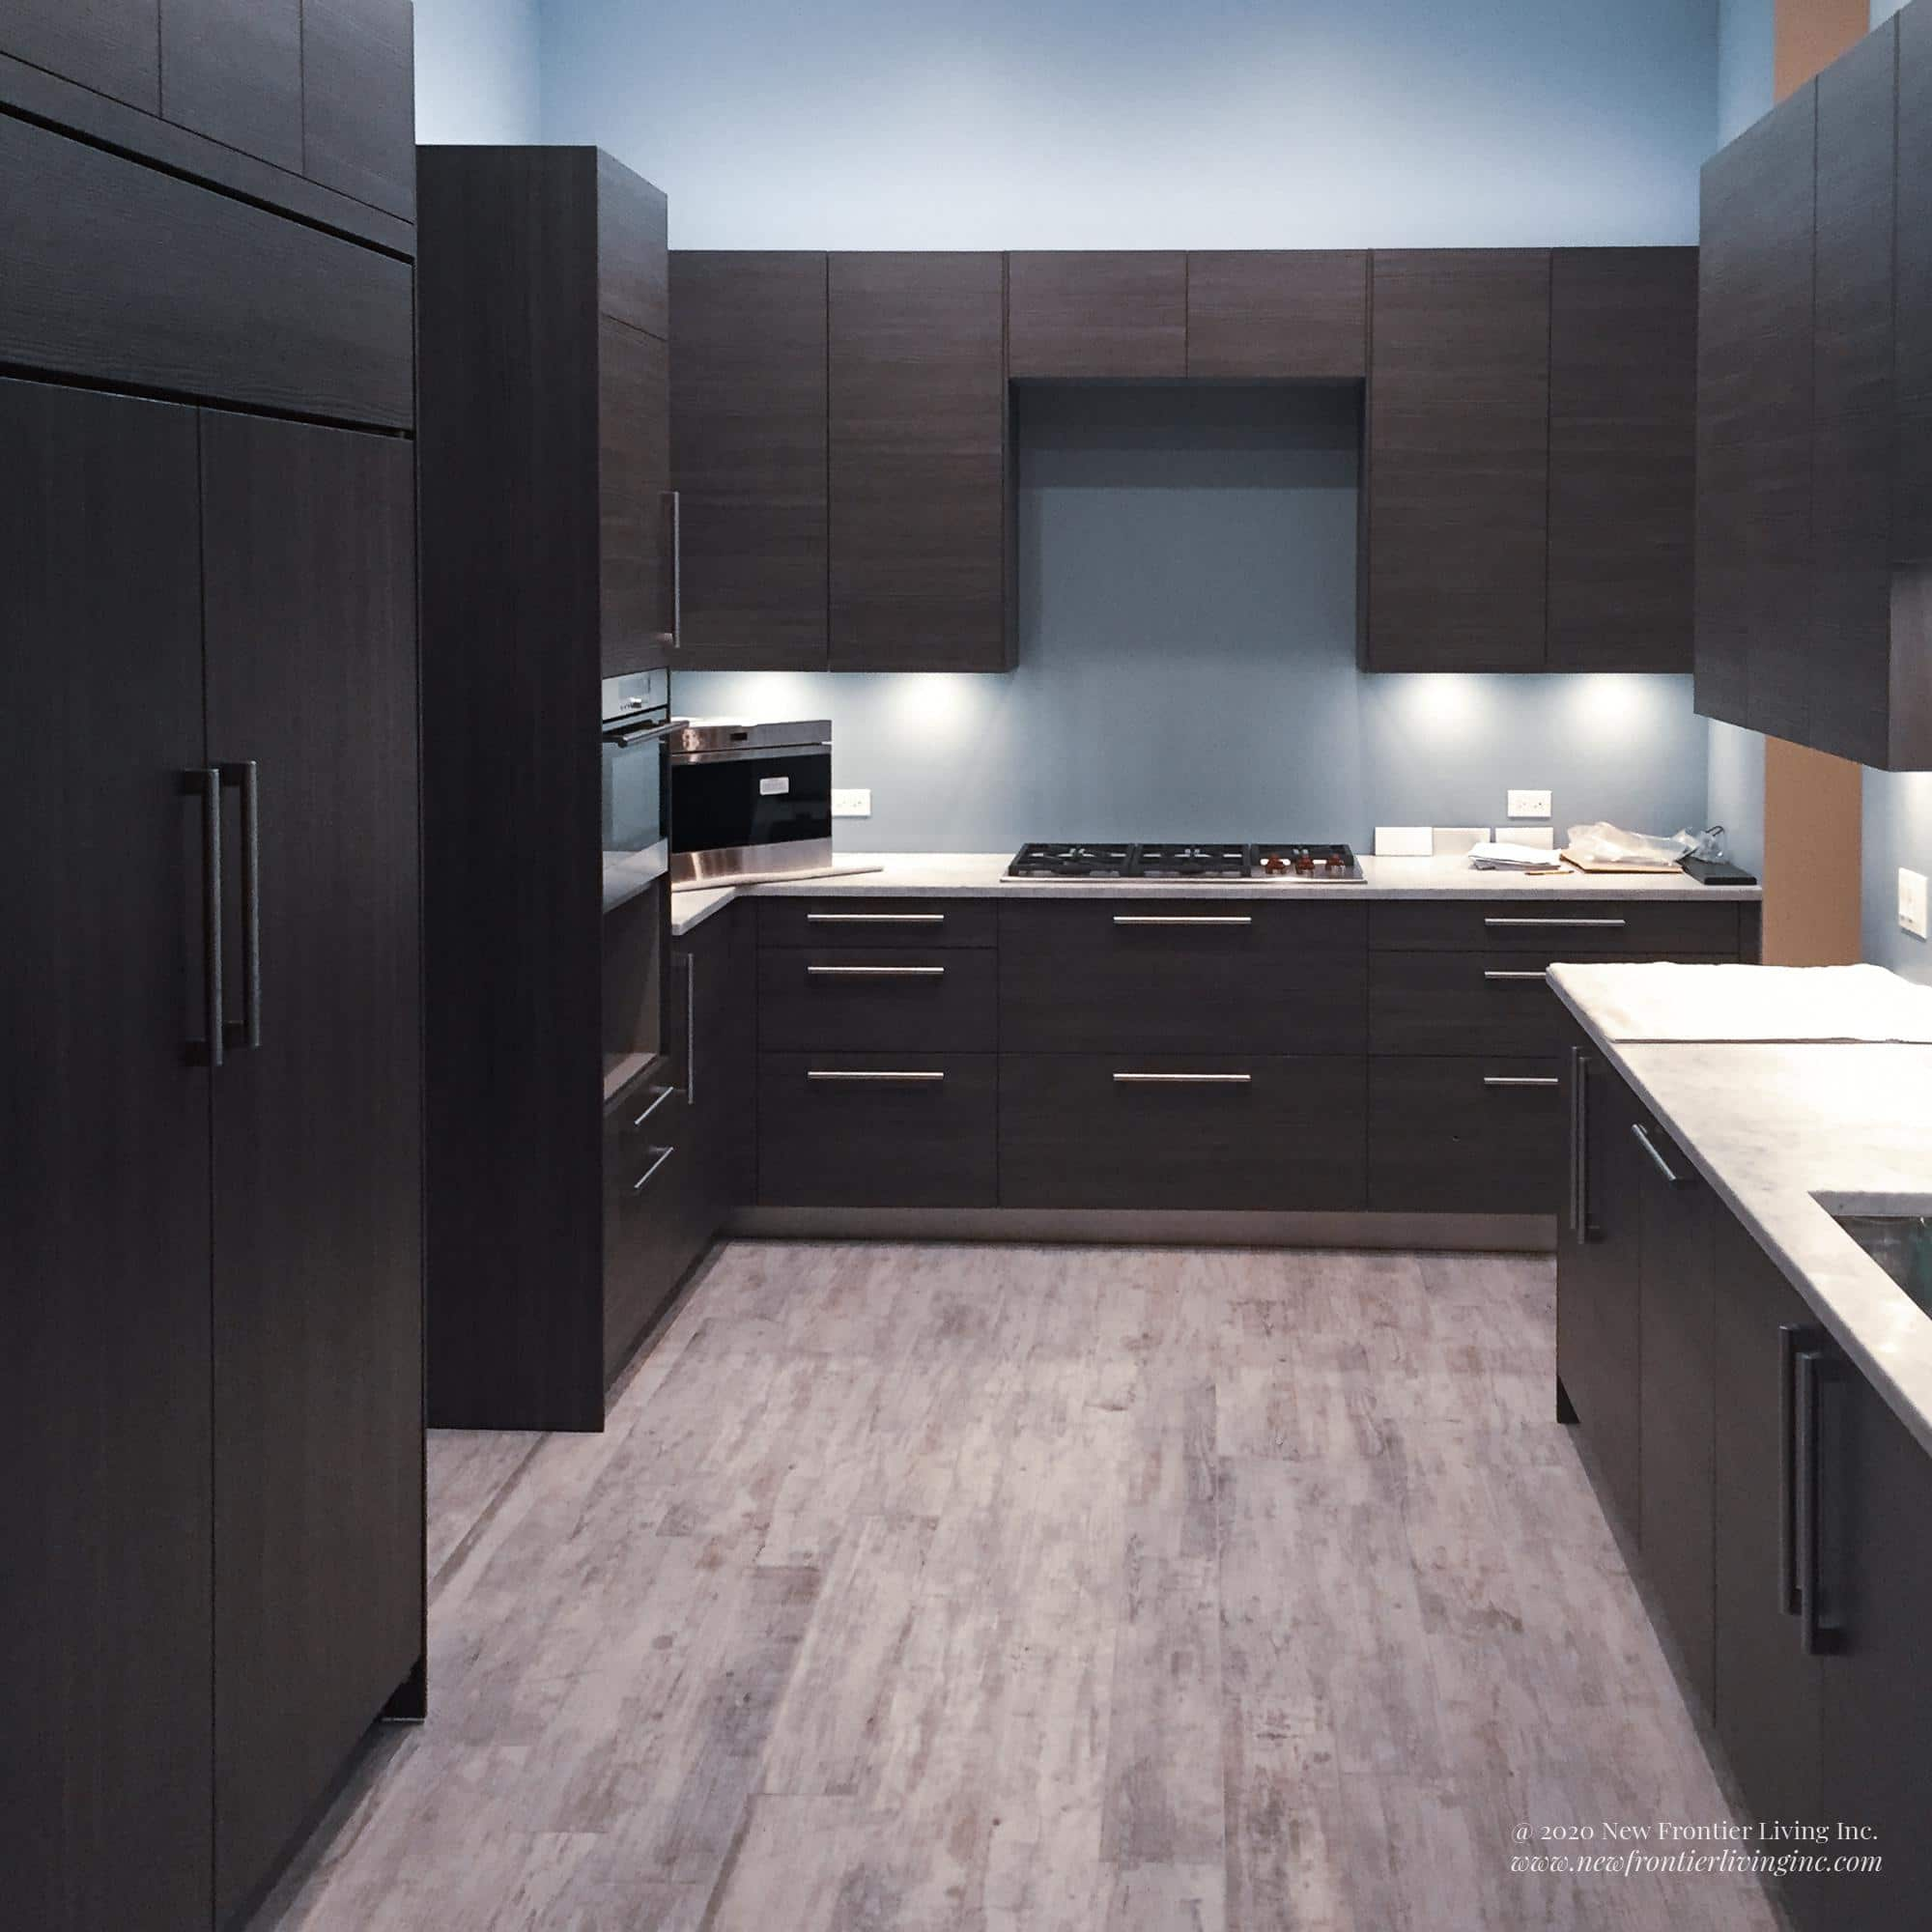 Black kitchen cabinetry and white countertop and light gray floor, large cabinets and pantries